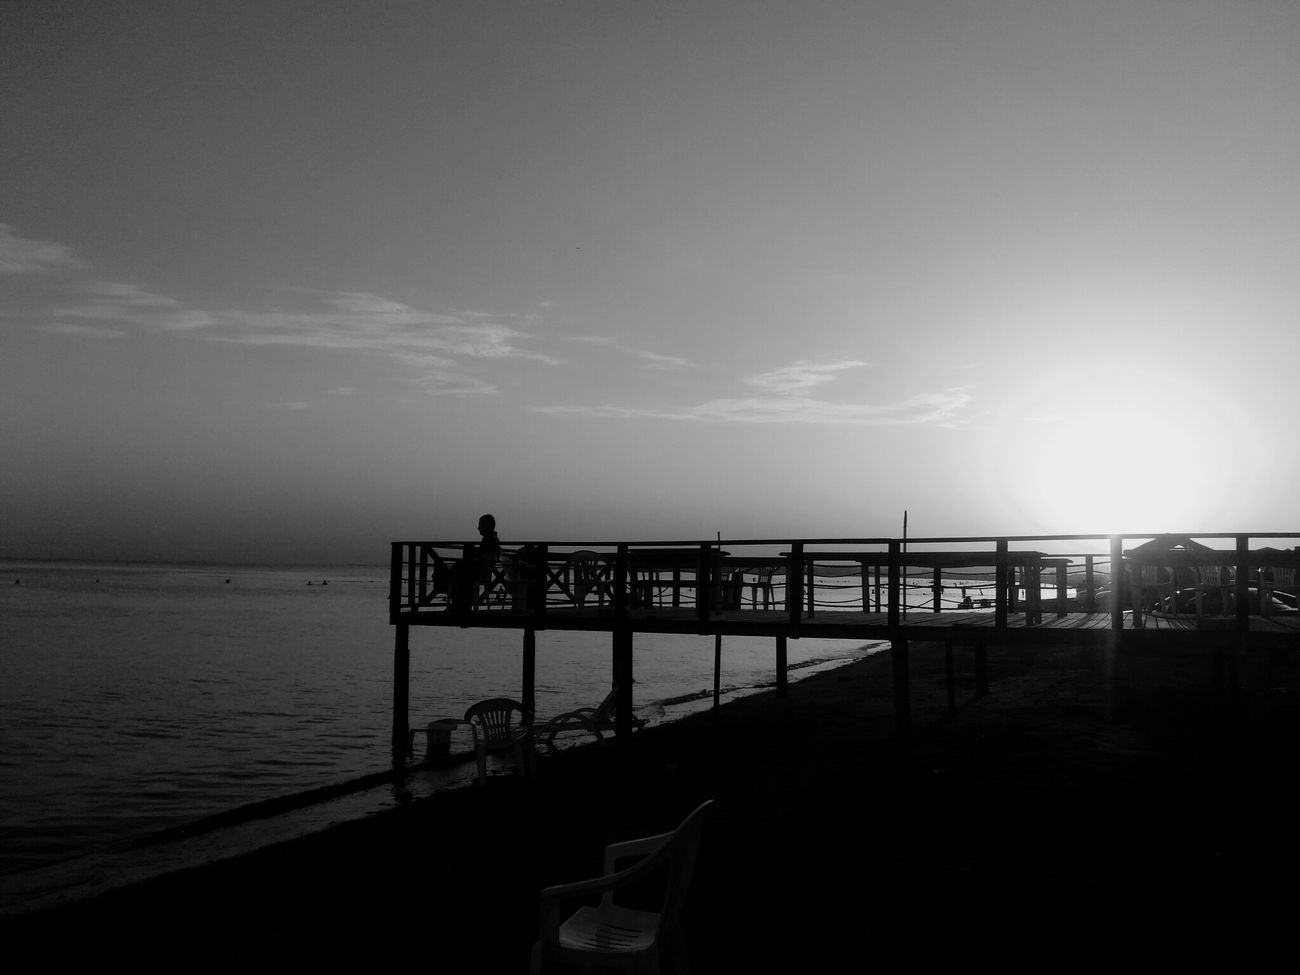 Baku Azerbaijan Turcannes Turkan Beach Beach Photography Blackandwhite B&w Photography Seaside Seashore Bakunights Nature Sea Summer Summer2016 Summer Memories 🌄 LastDay Azerbaycan Asus Zenfone Photography Zenfone Photography Zenfonegraphy Asuszenfone2laser